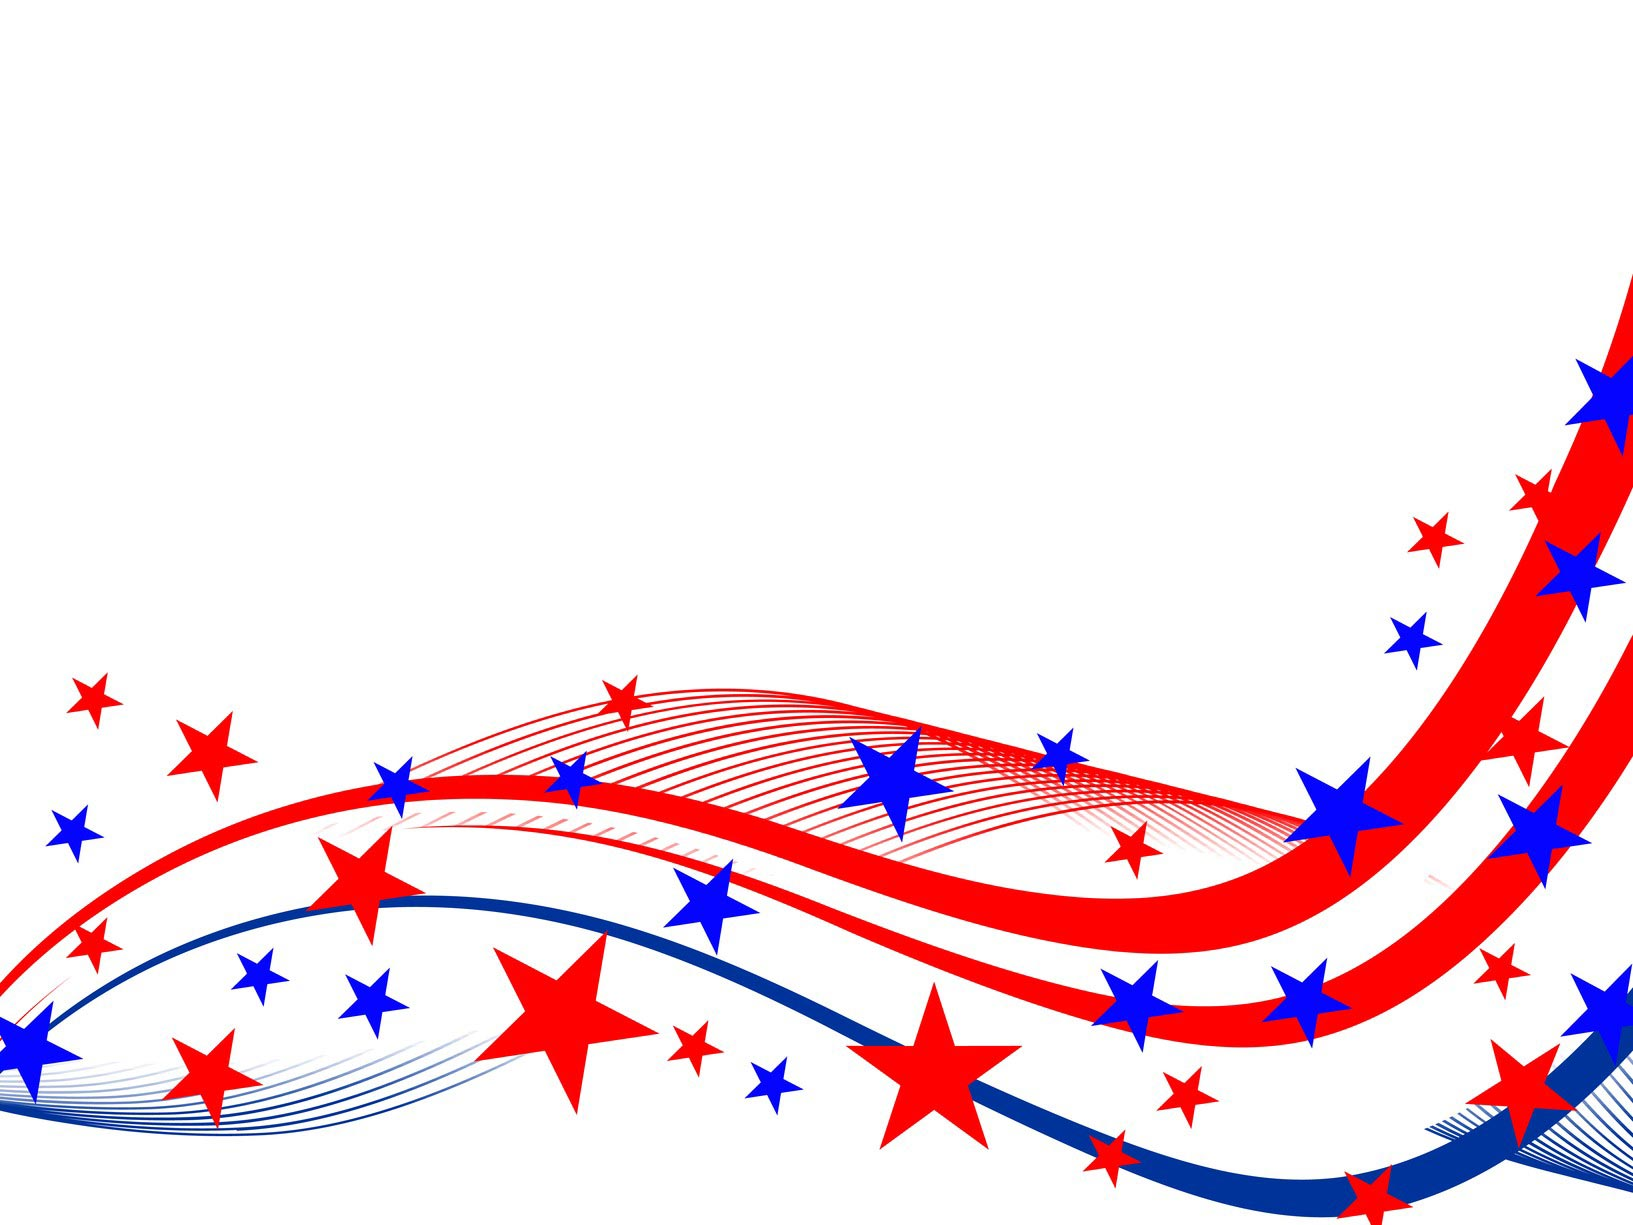 Free vector clipart fourth of july border image freeuse stock Fourth Of July Border | Free download best Fourth Of July Border on ... image freeuse stock